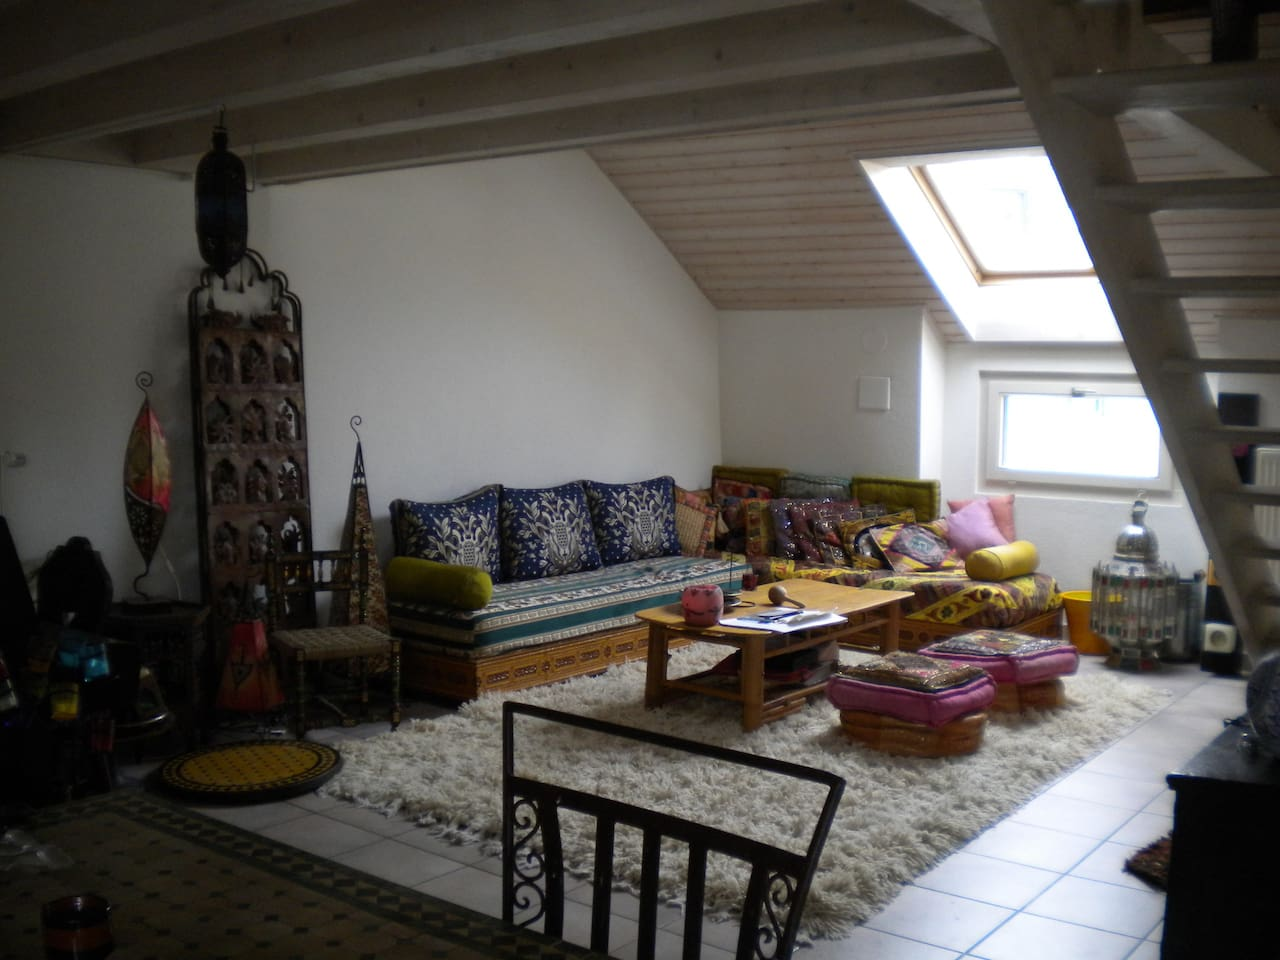 <nice and bright living room where you can relax and feel at home